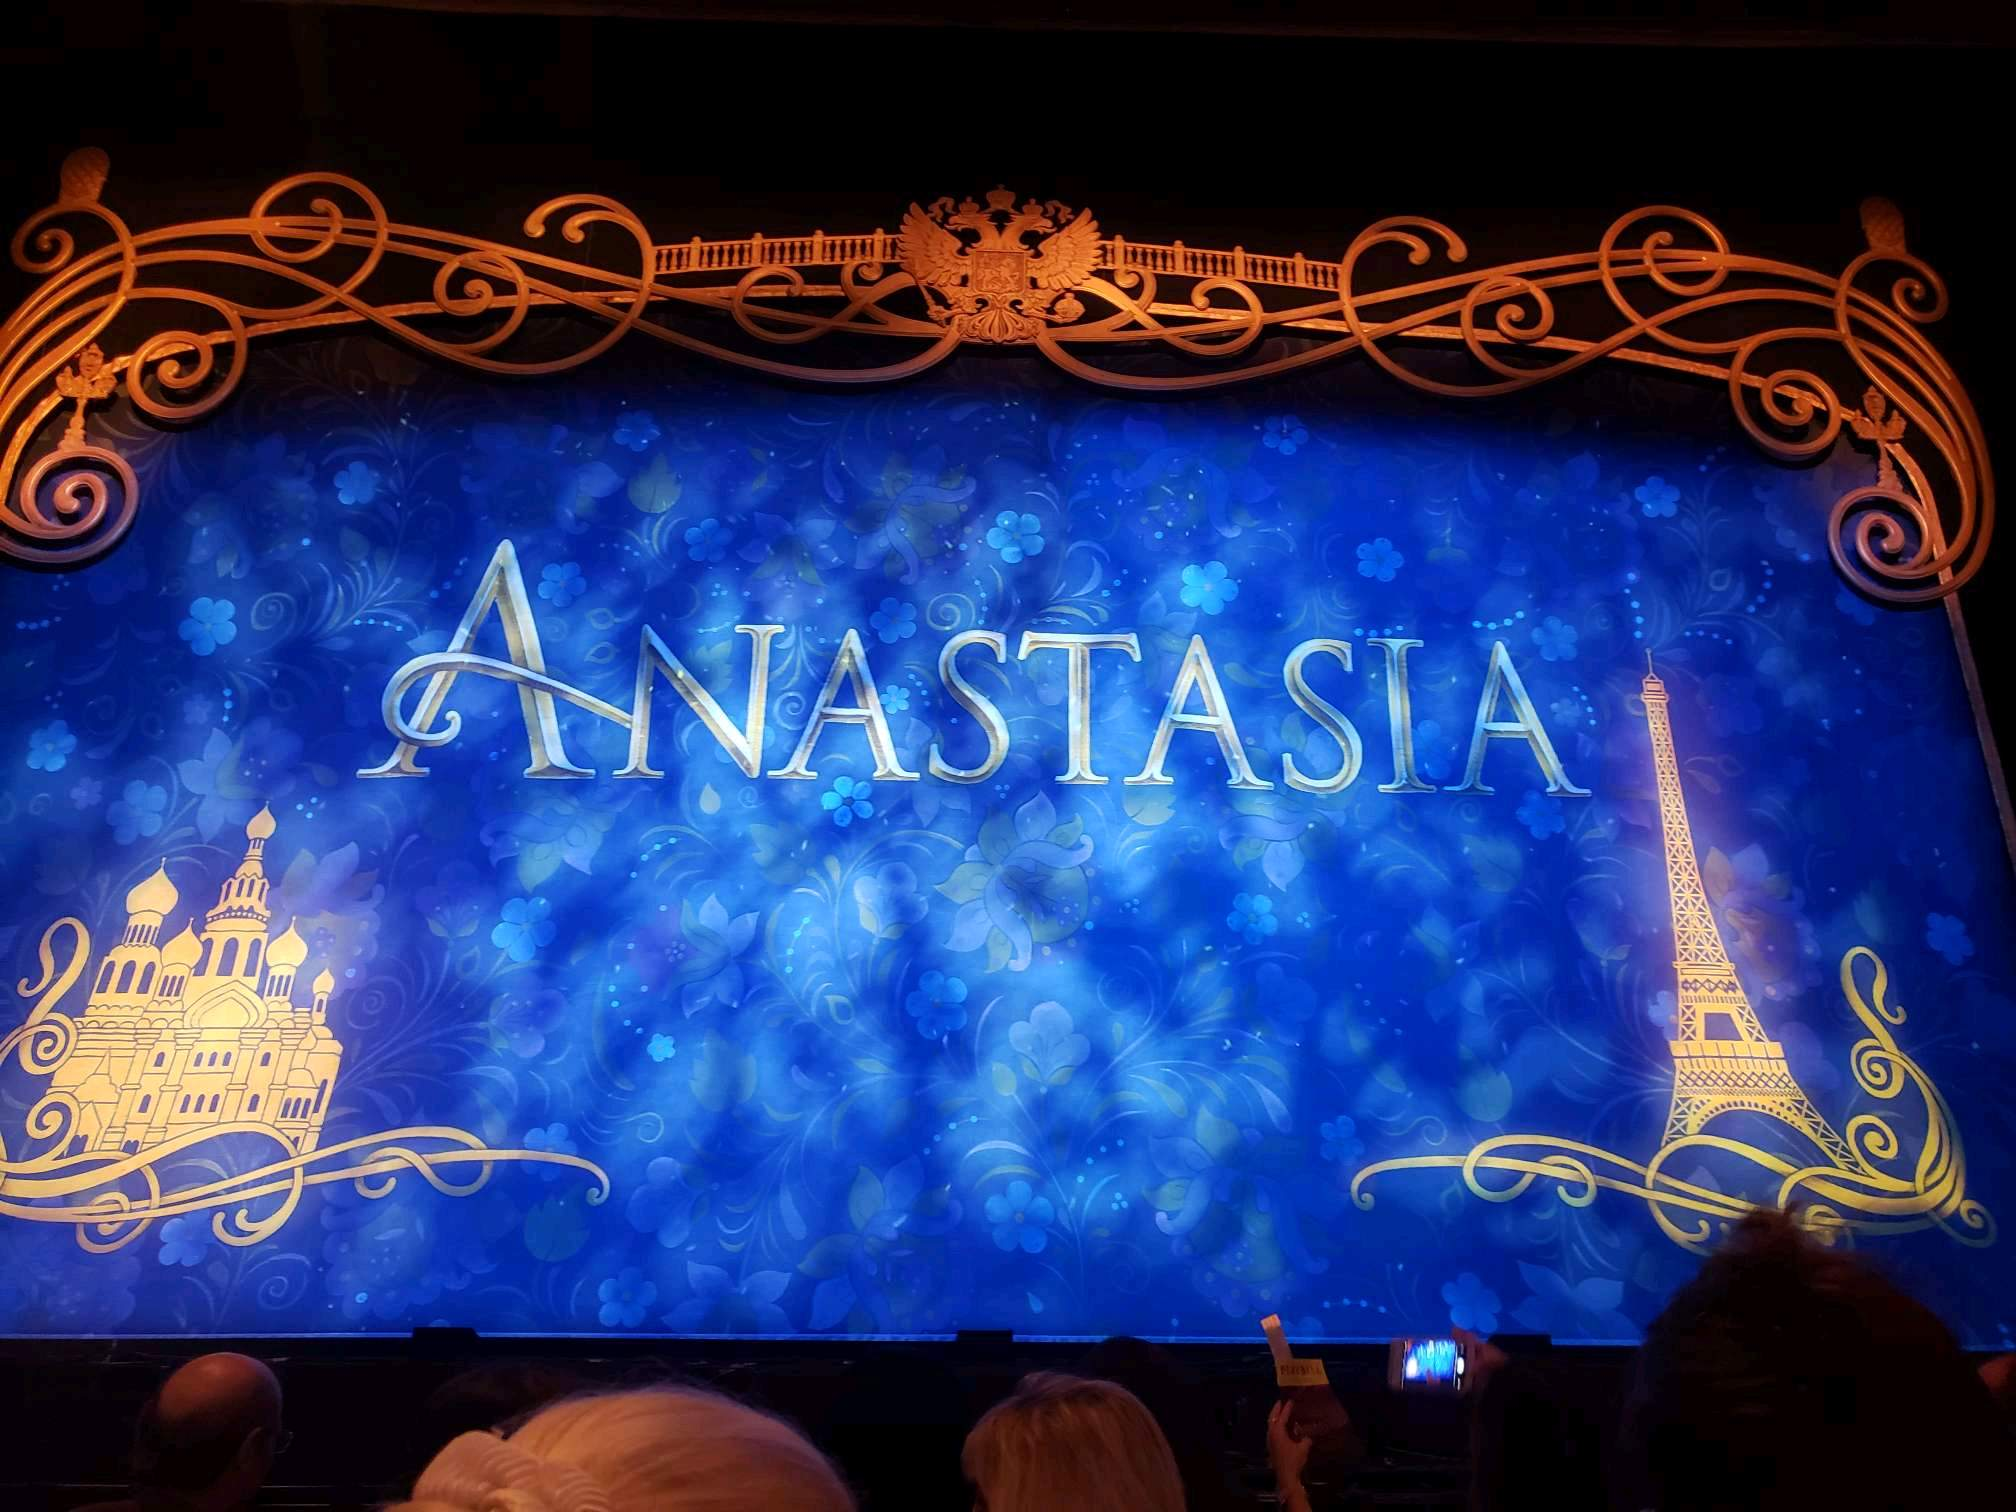 Hollywood Pantages Theatre Section Orchestra C Row D Seat 107, 108